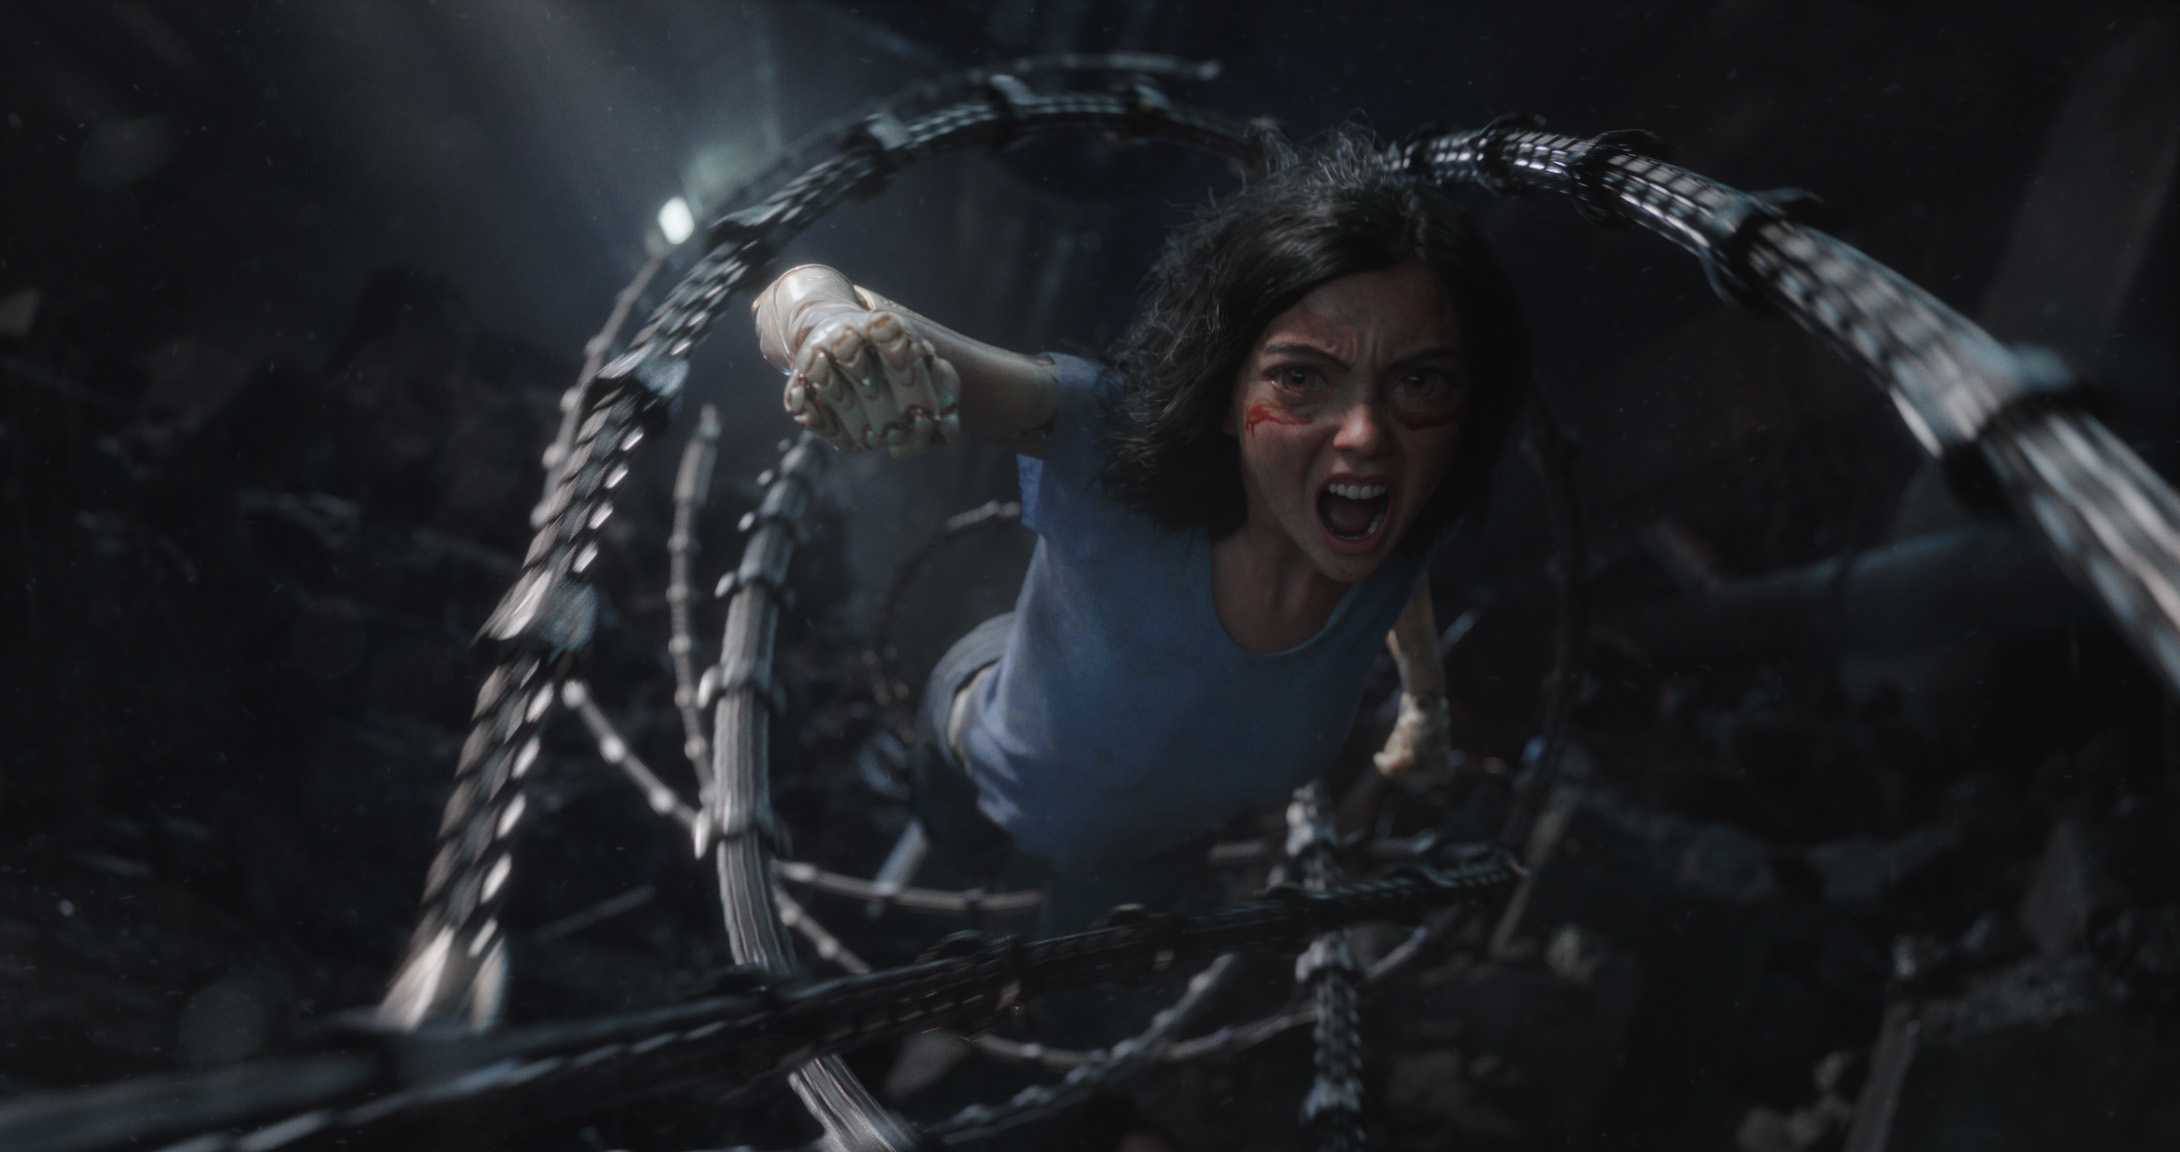 ABA_110_UNW_0680_v0690.87450 – Rosa Salazar stars as Alita in Twentieth Century Fox's ALITA: BATTLE ANGEL. Photo Credit: Courtesy Twentieth Century Fox.